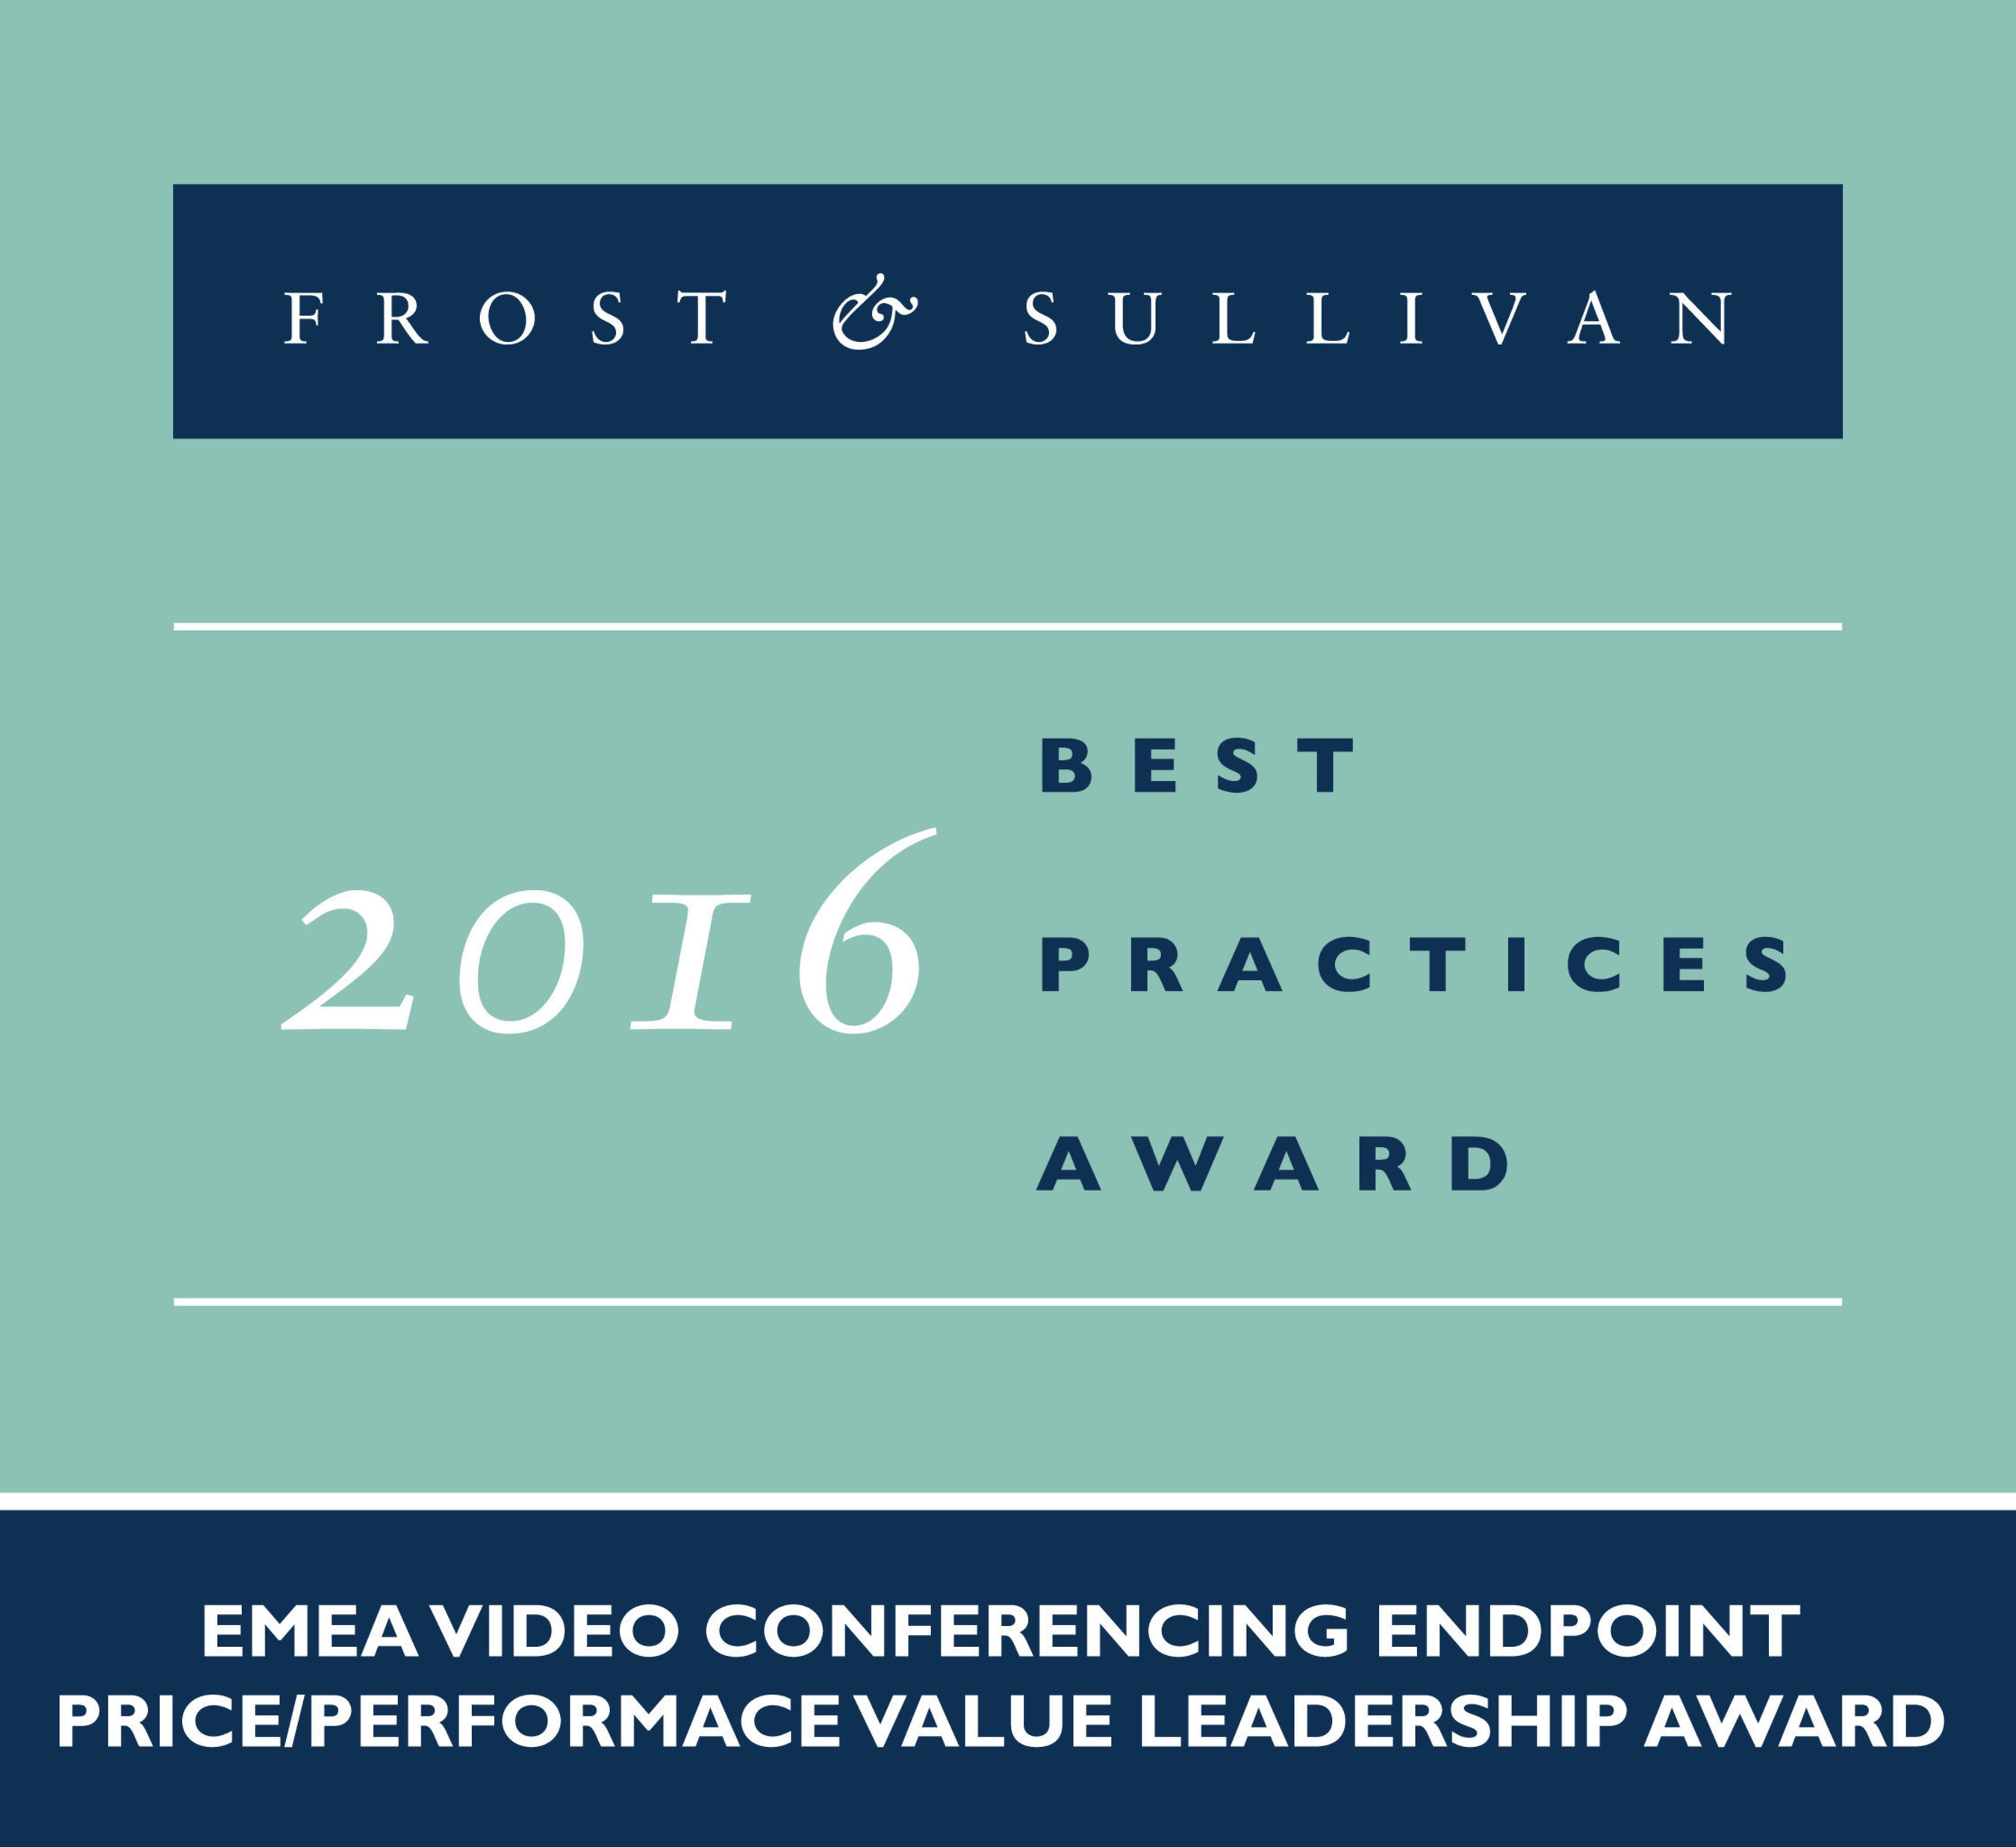 Tely Receives EMEA Video Conferencing Endpoint Price/Performance Value Leadership Award